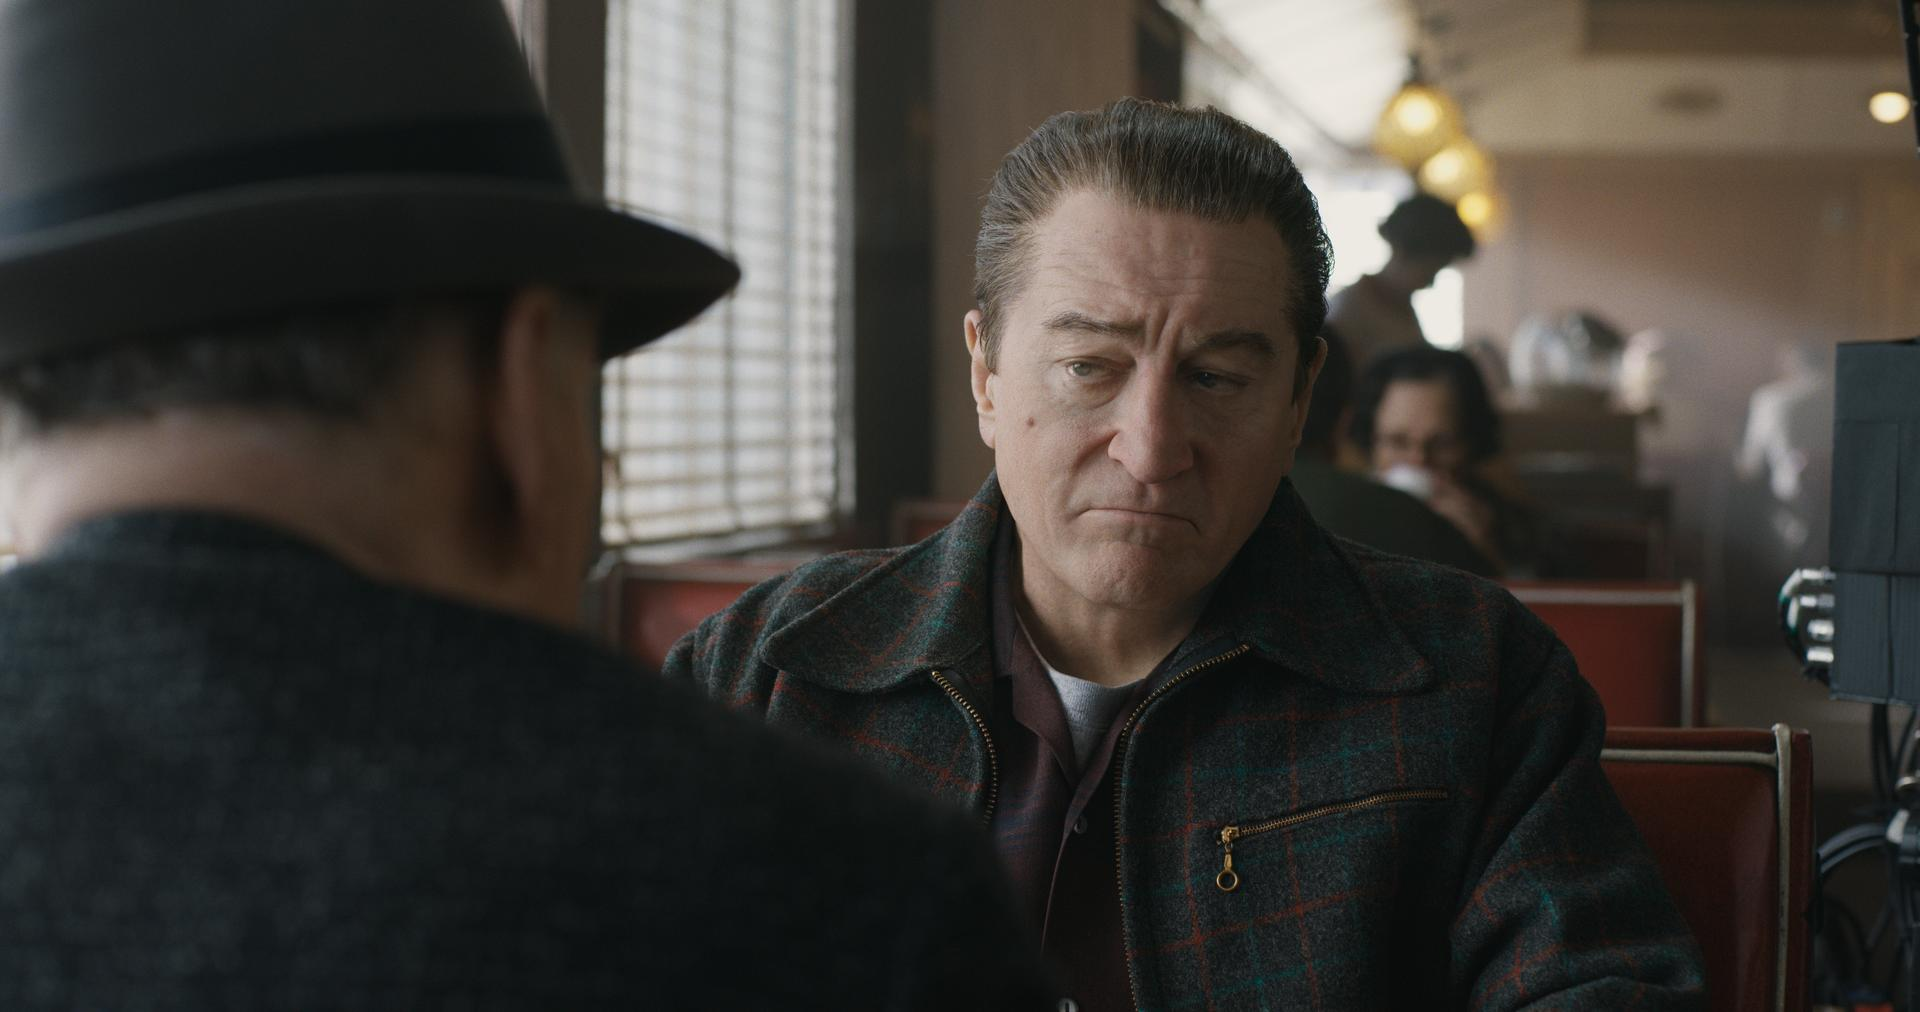 'The Irishman' Plows Ahead, Leading the Critics' Choice Awards with 14 Nominations